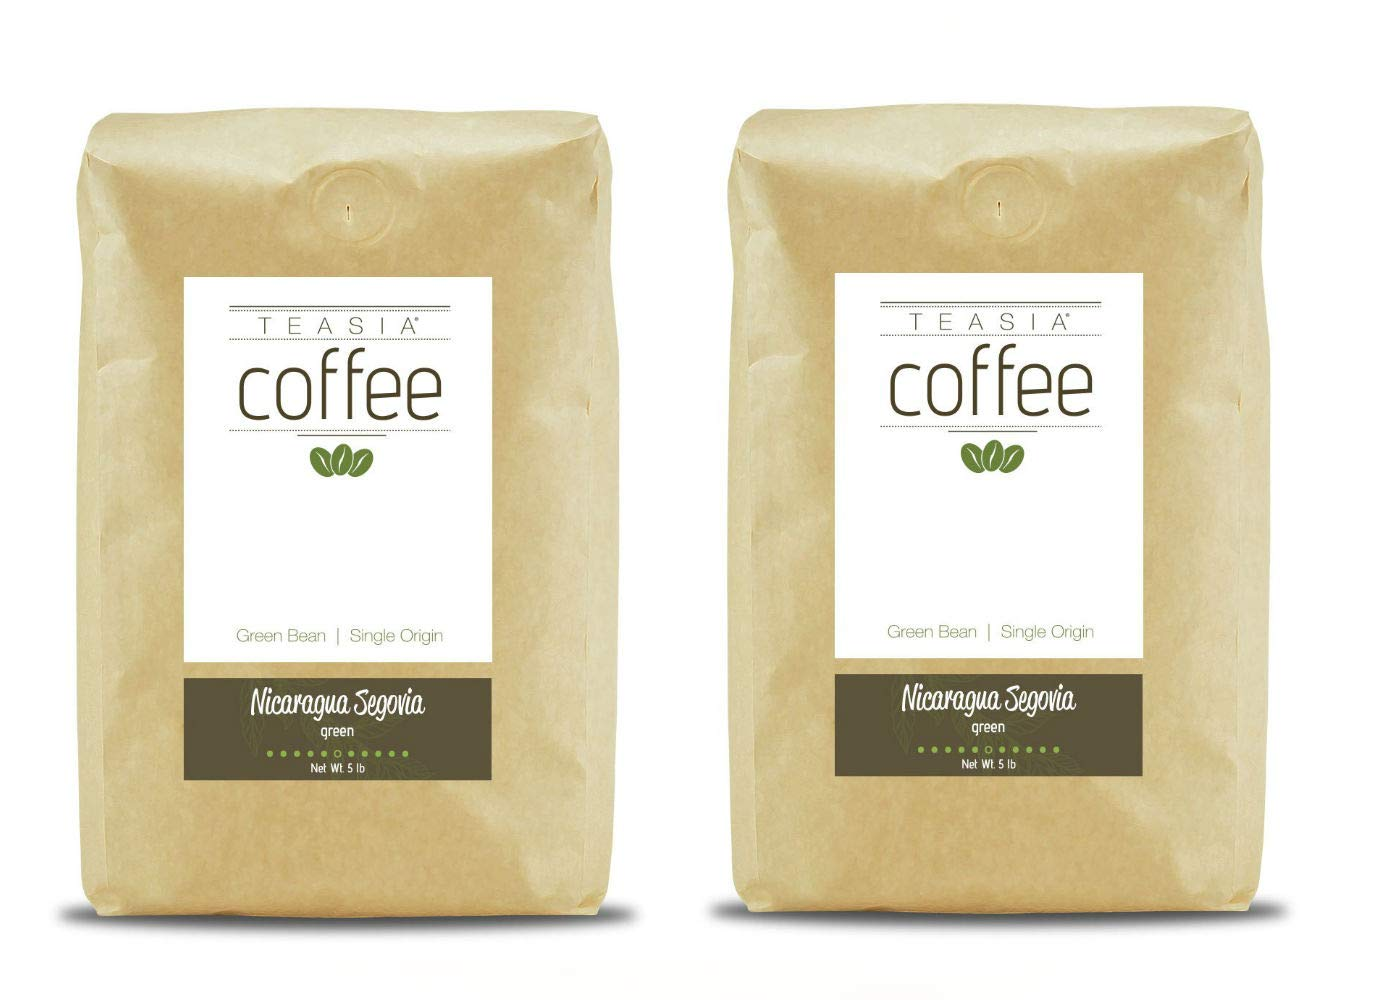 Teasia Coffee, Nicaragua Segovia, Single Origin Fair Trade, Green Unroasted Whole Coffee Beans, 5-Pound Bag (2-Pack)